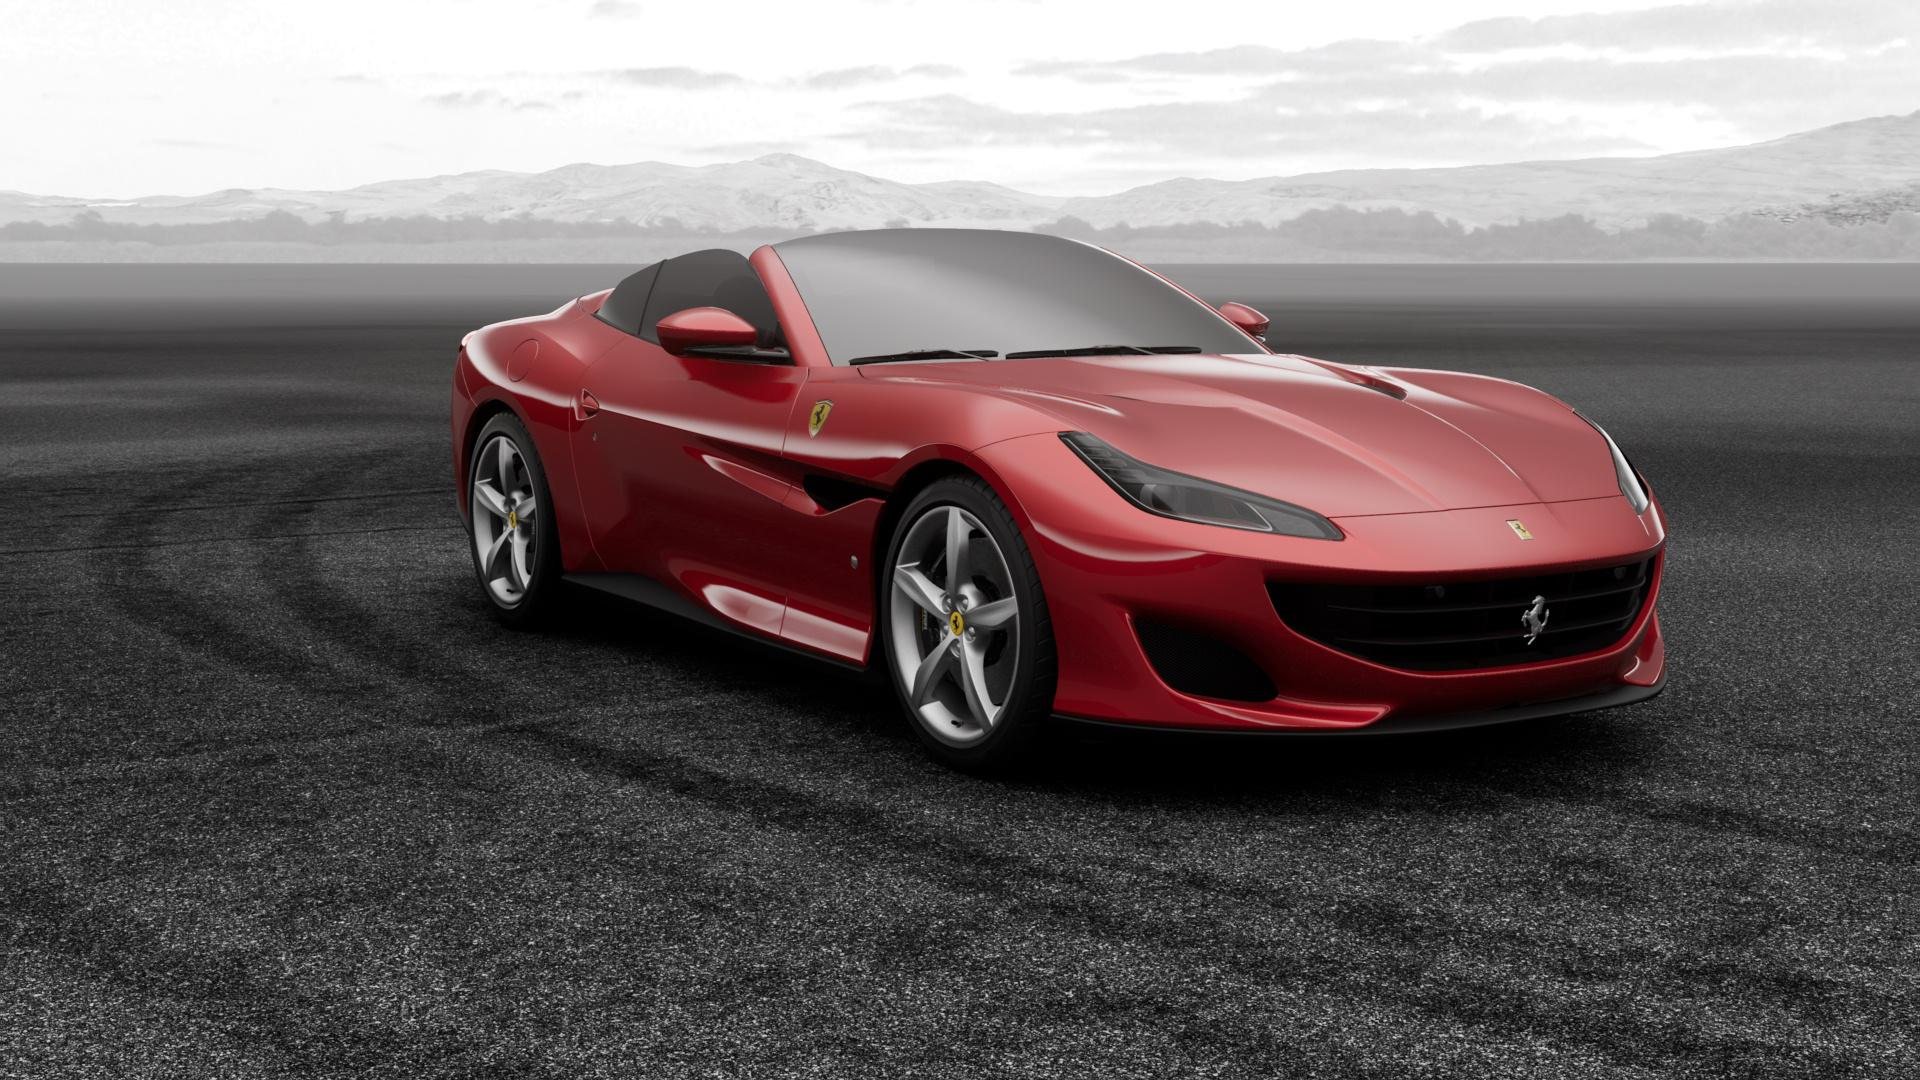 Time Wallpaper Hd Ferrari Portofino Configurator Ferrari Official Car